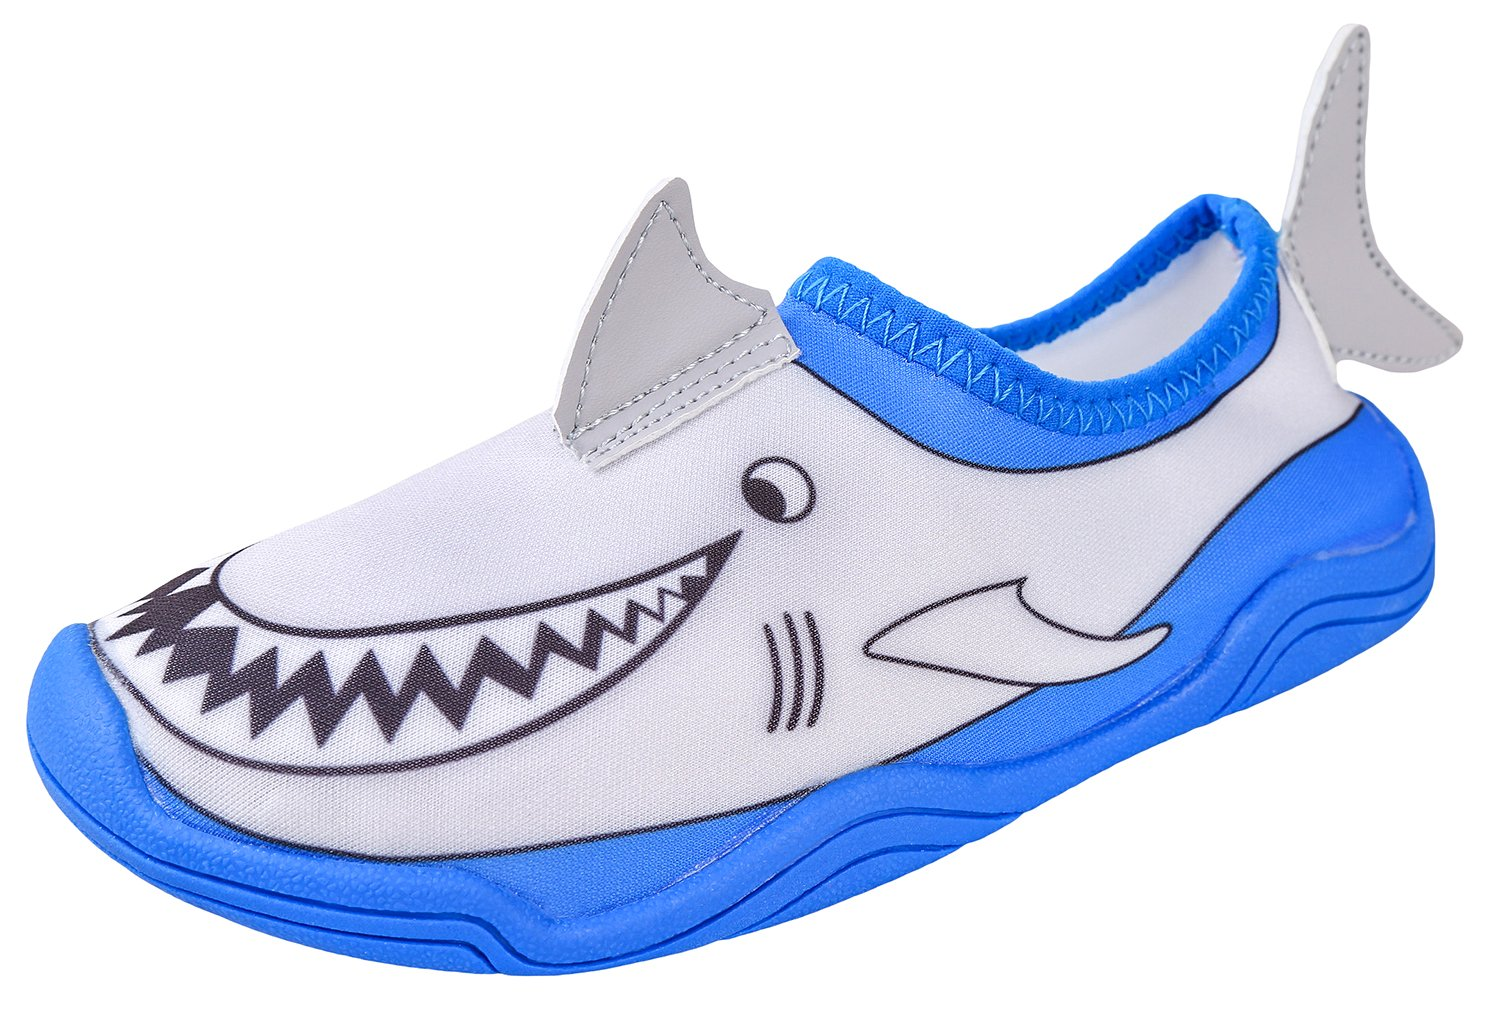 Lil' Fins Water Pals Kid Shoes | Beach | Summer Fun | Water Shoes | Quick Dry | Swim Shoes | Shark 2D/3D Fins 1/2